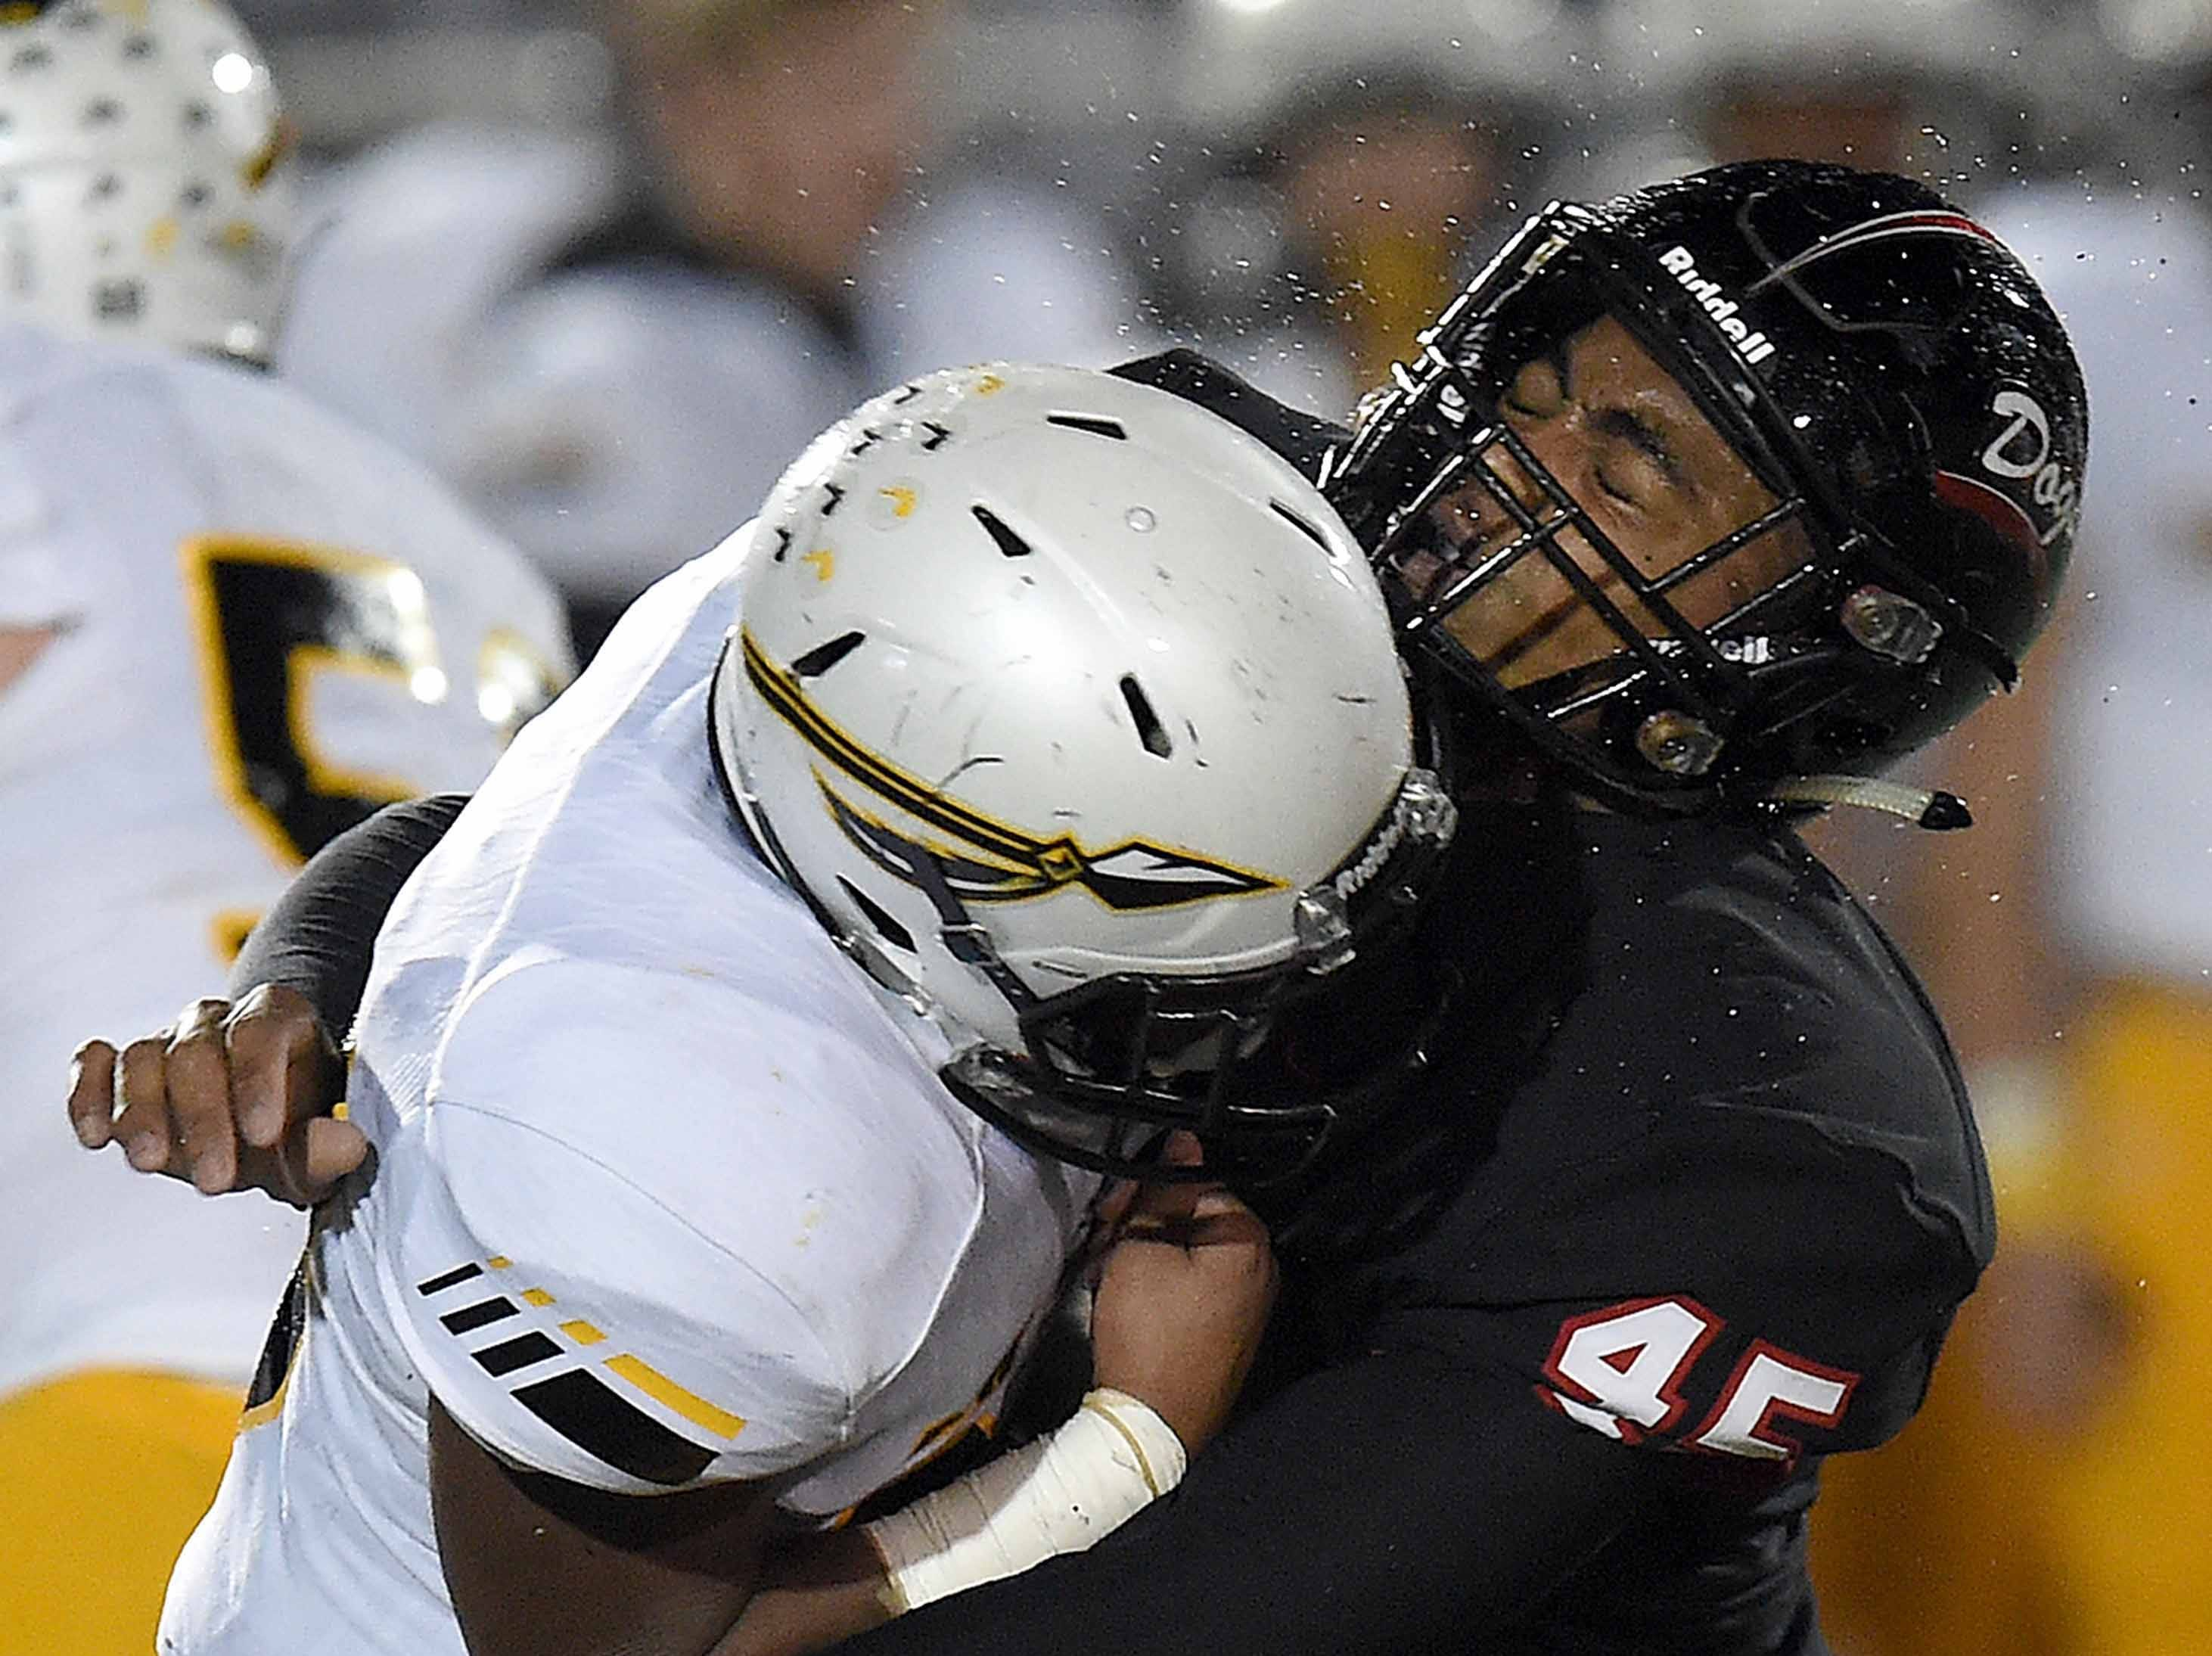 Water flies off the helmet of Brandon's Orvin Gipson (45) after making a hit on an Oak Grove ball carrier in the MHSAA Class 6A South State Championship on Friday, November 23, 2018, at Brandon High School in Brandon, Miss.